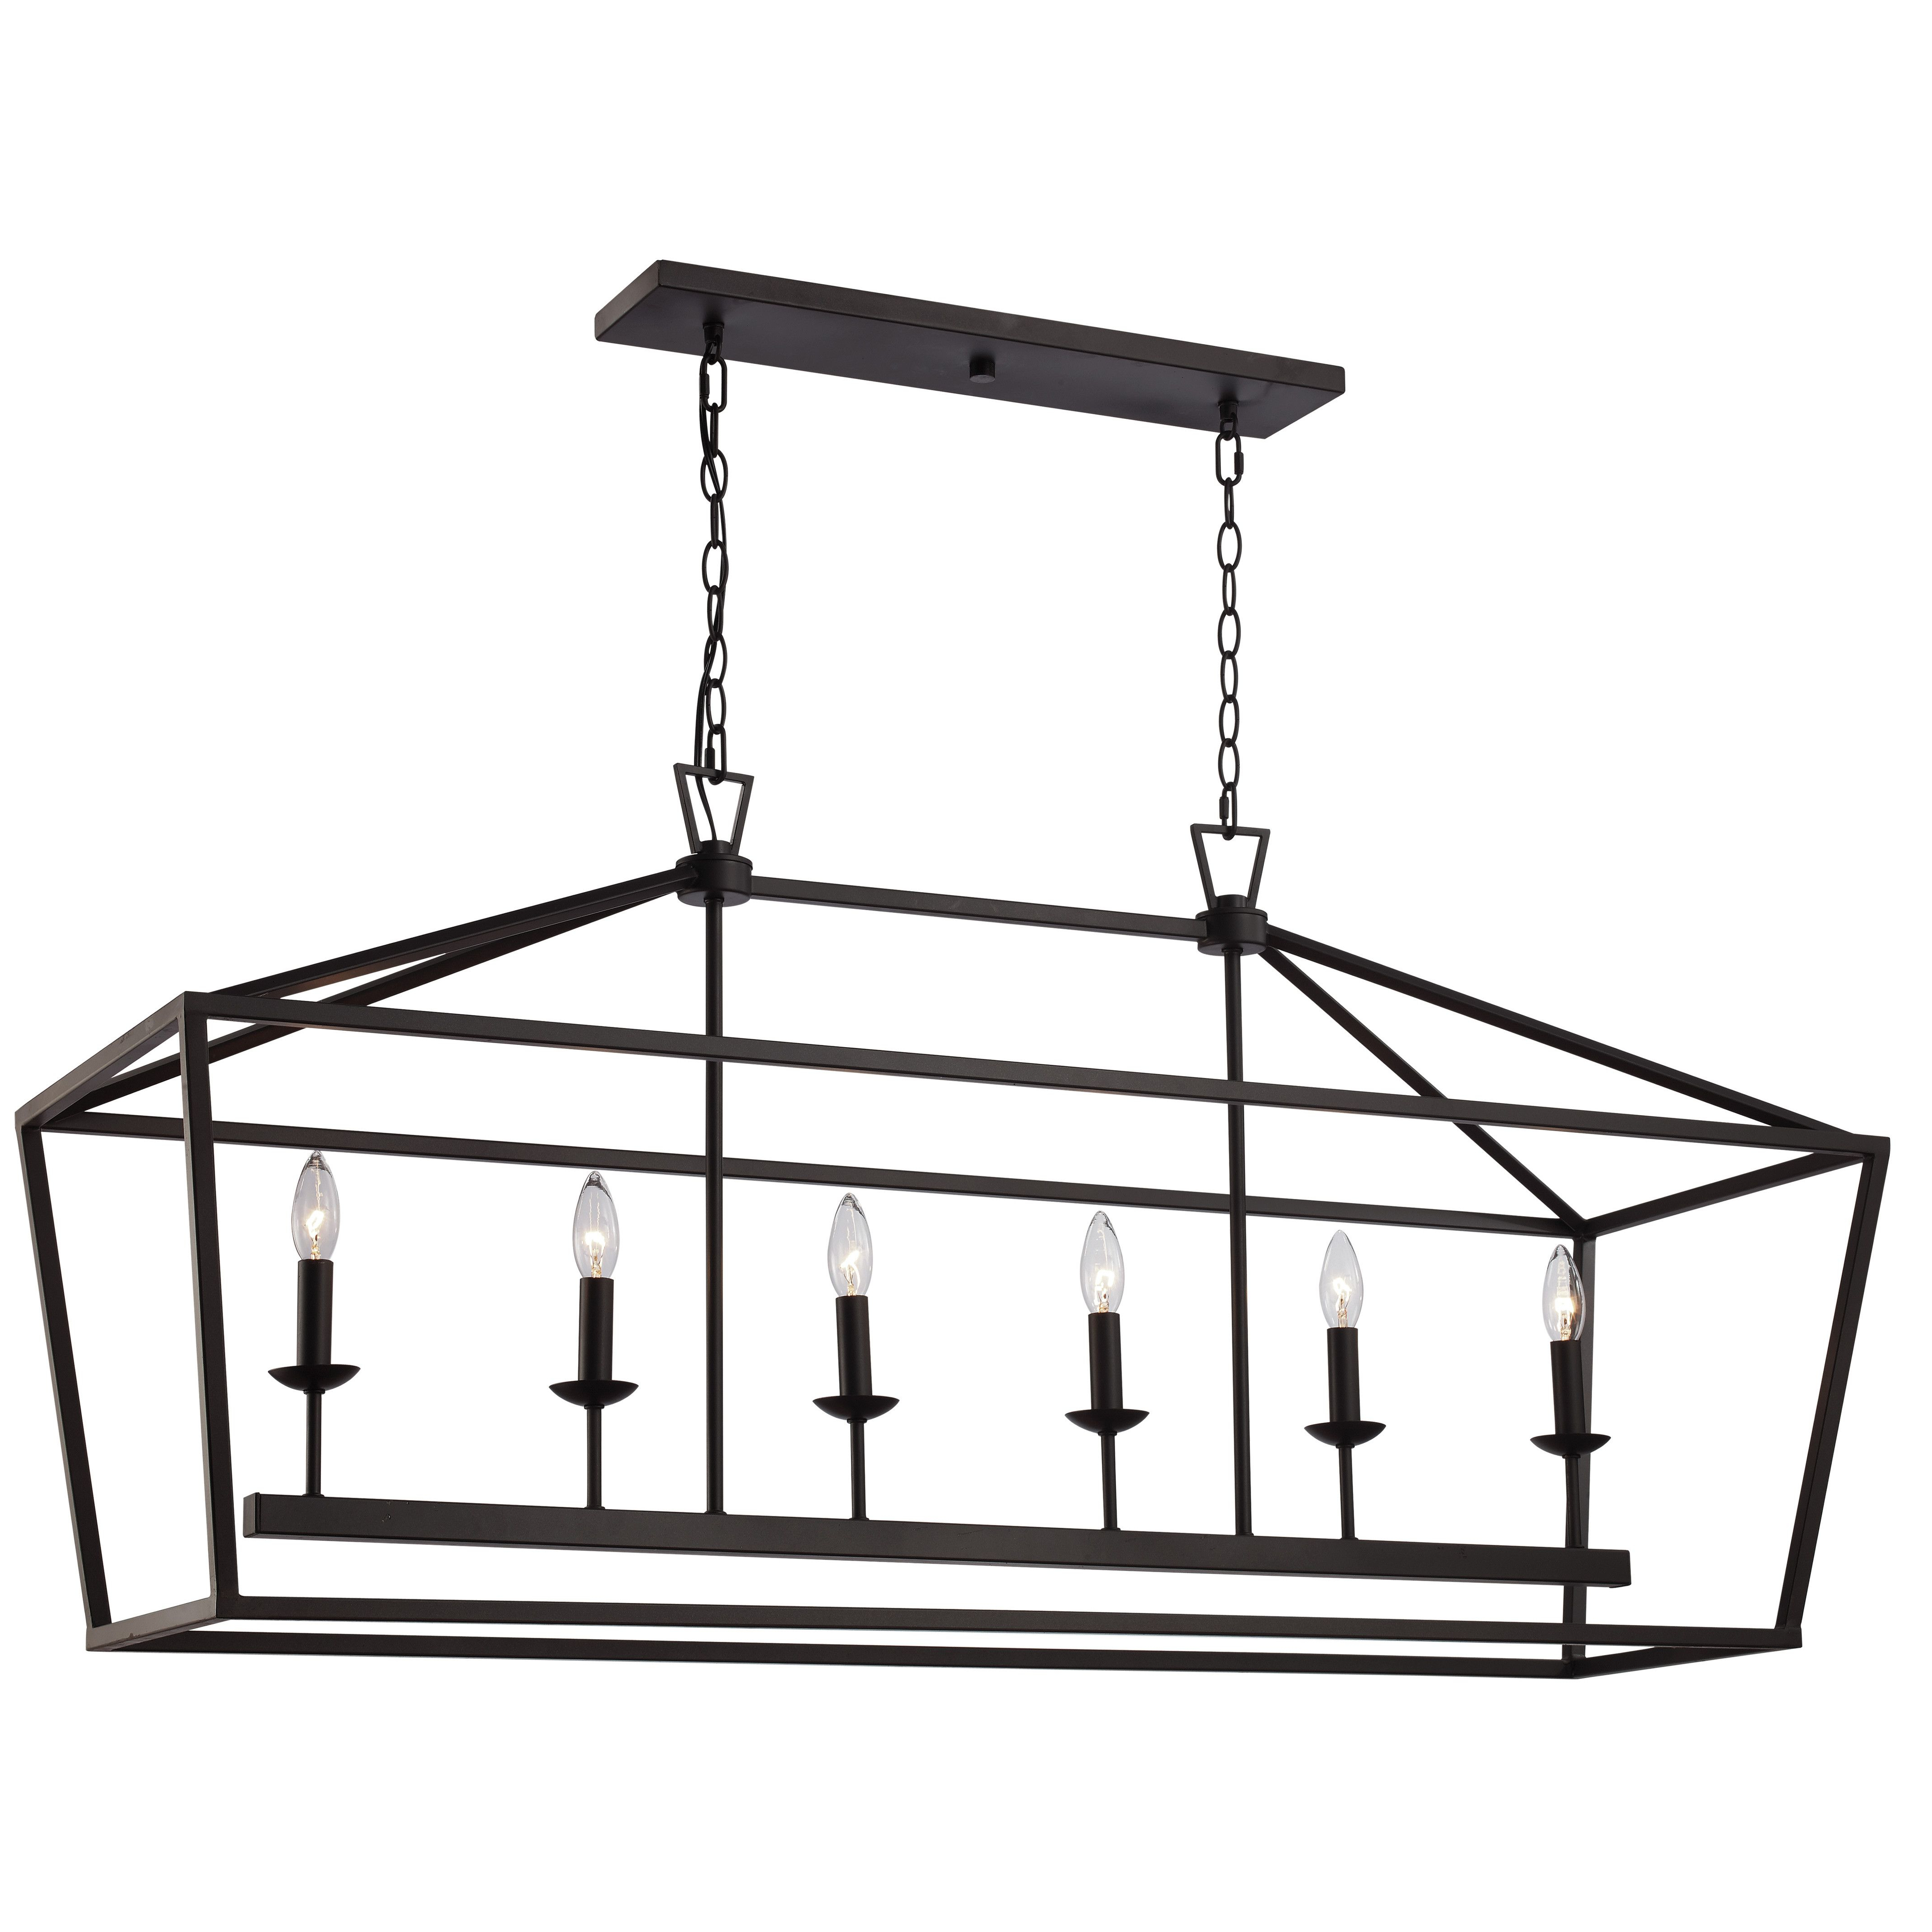 You'll Love The Carmen 6 Light Geometric Pendant At Wayfair Intended For Widely Used Carmen 8 Light Lantern Tiered Pendants (Gallery 12 of 20)